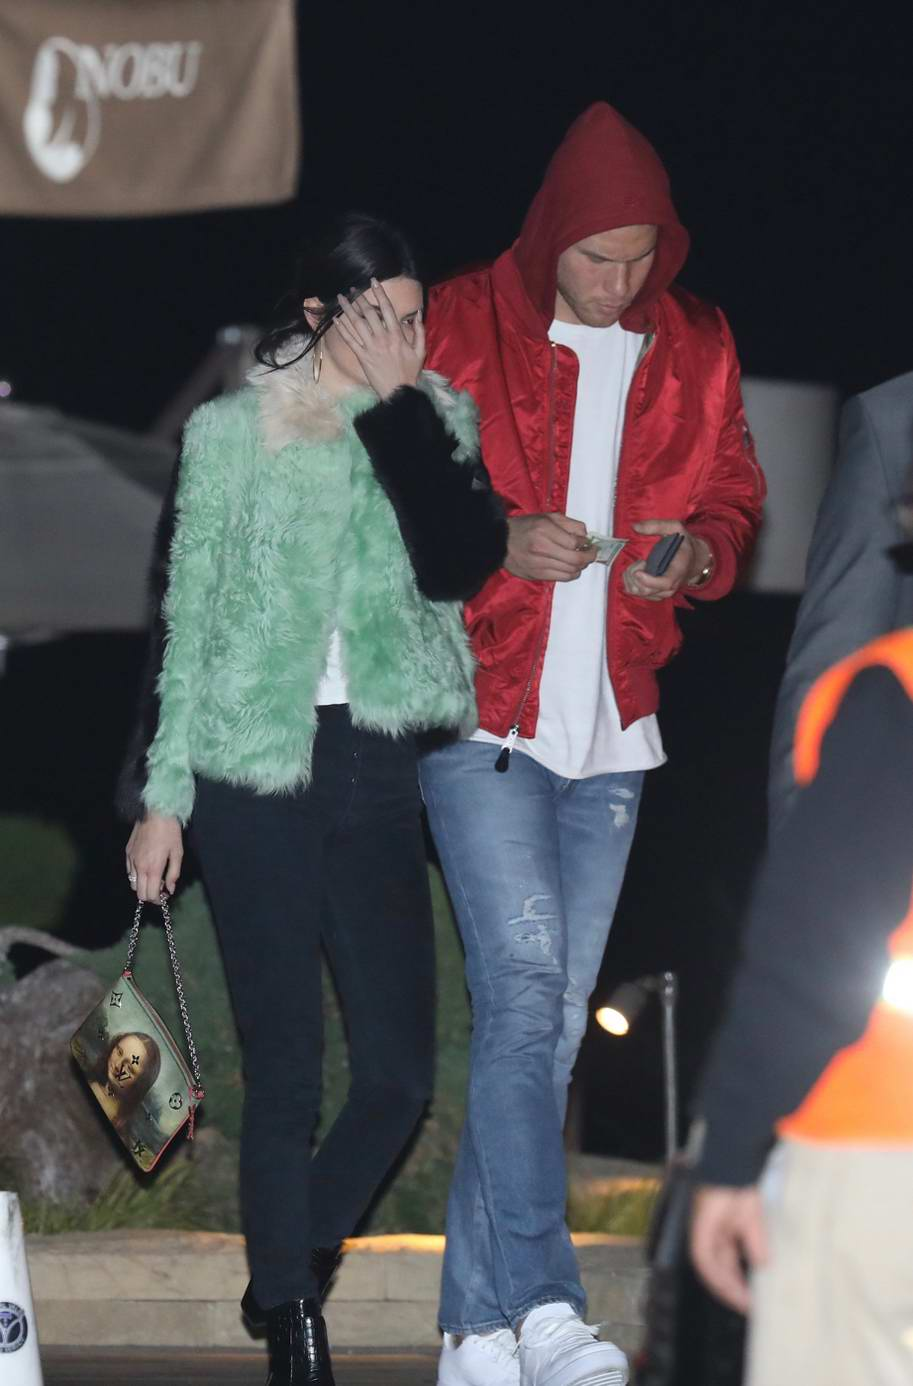 Kendall Jenner has a romantic dinner with Blake Griffin at Nobu in Malibu, California